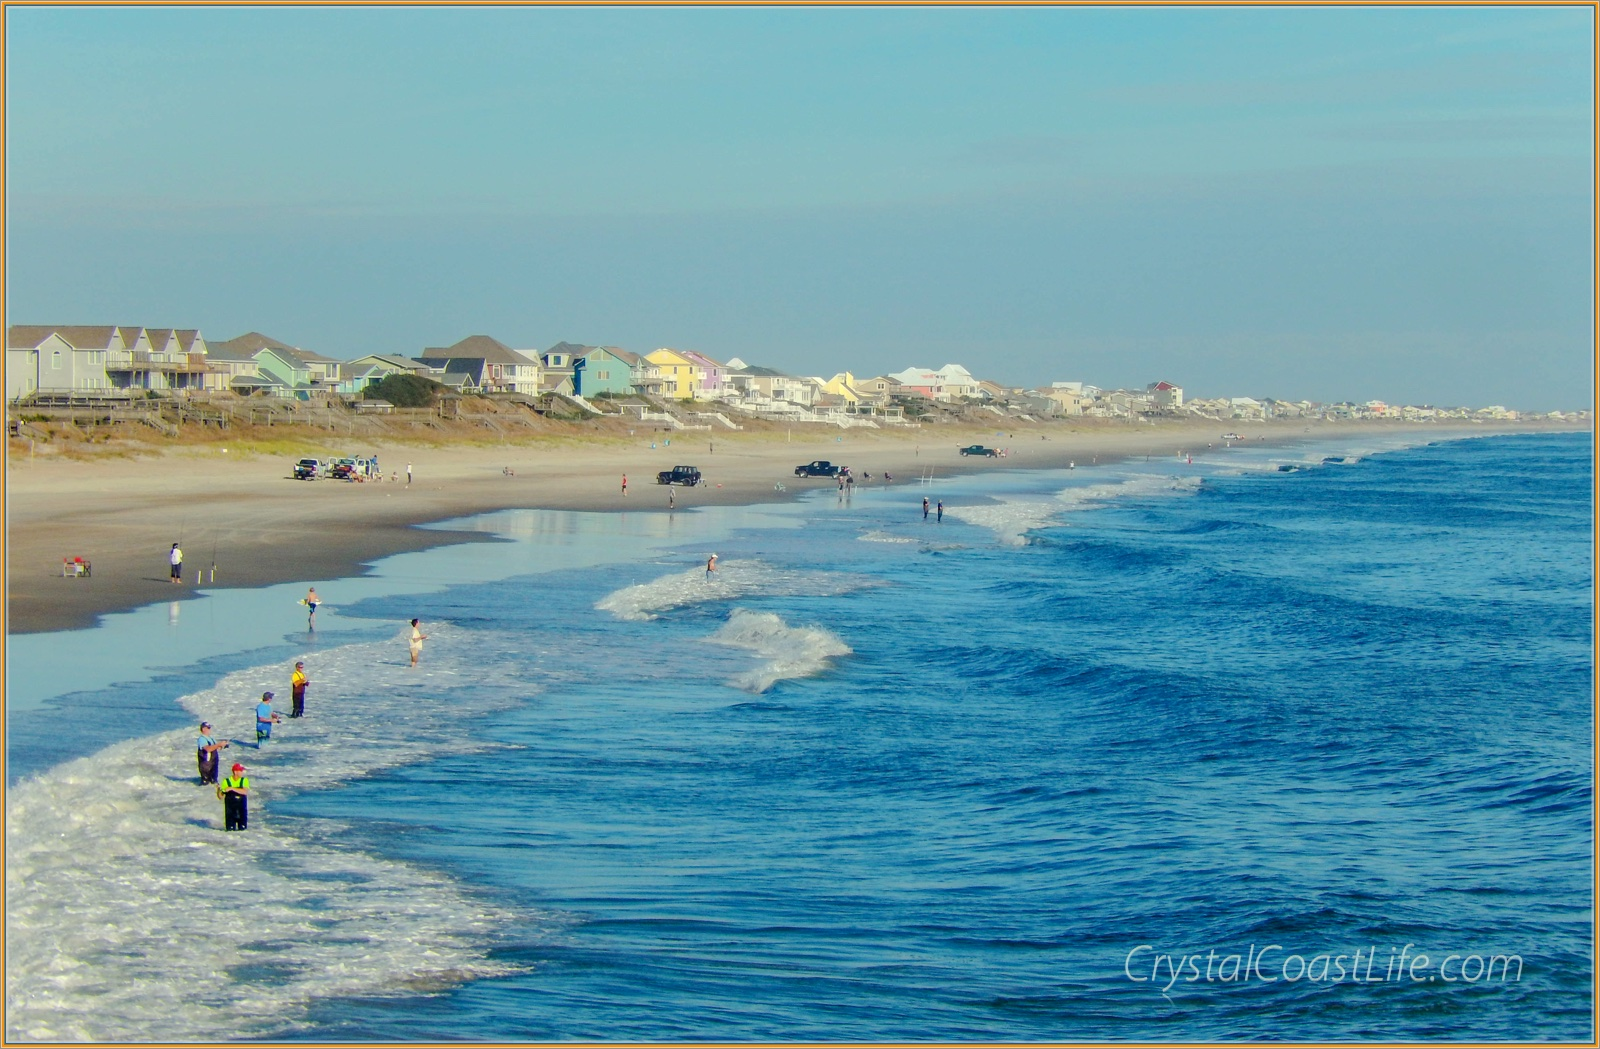 Great Beach Day November 29, 2015